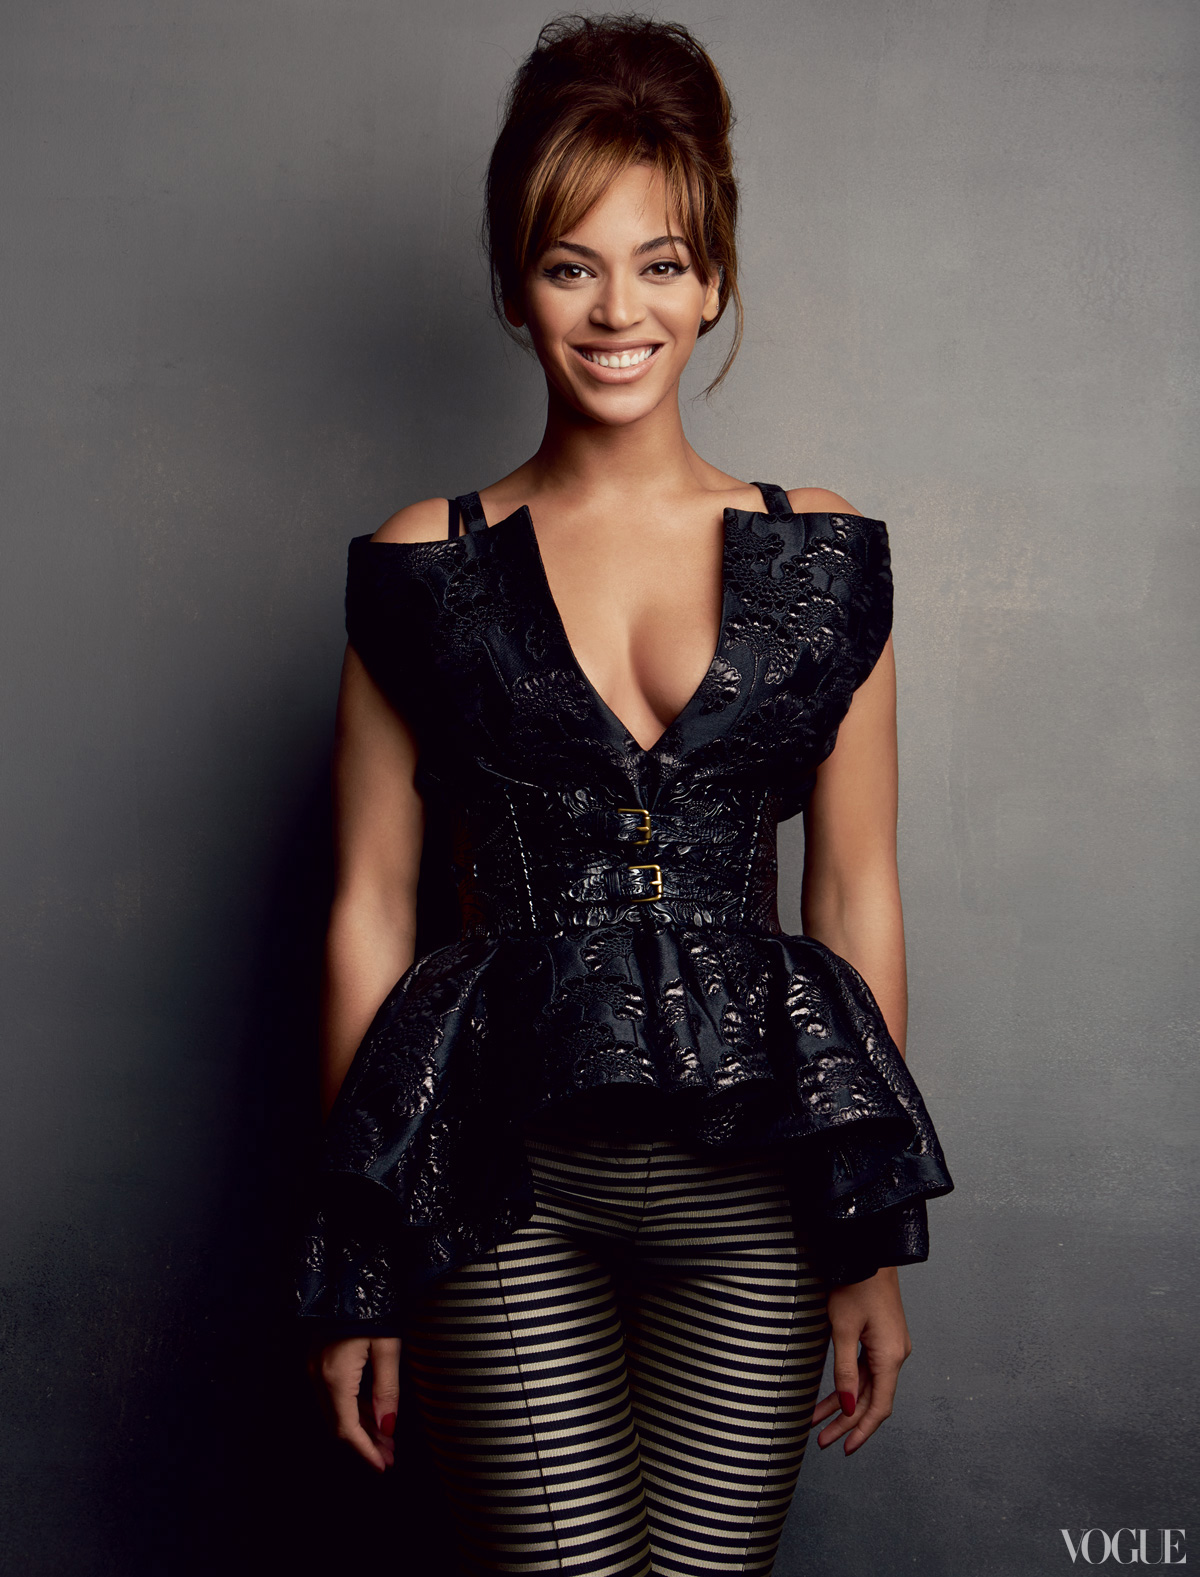 beyonce vogue 2013 3 Hot Shots: Beyonces Full Vogue Shoot Unveiled